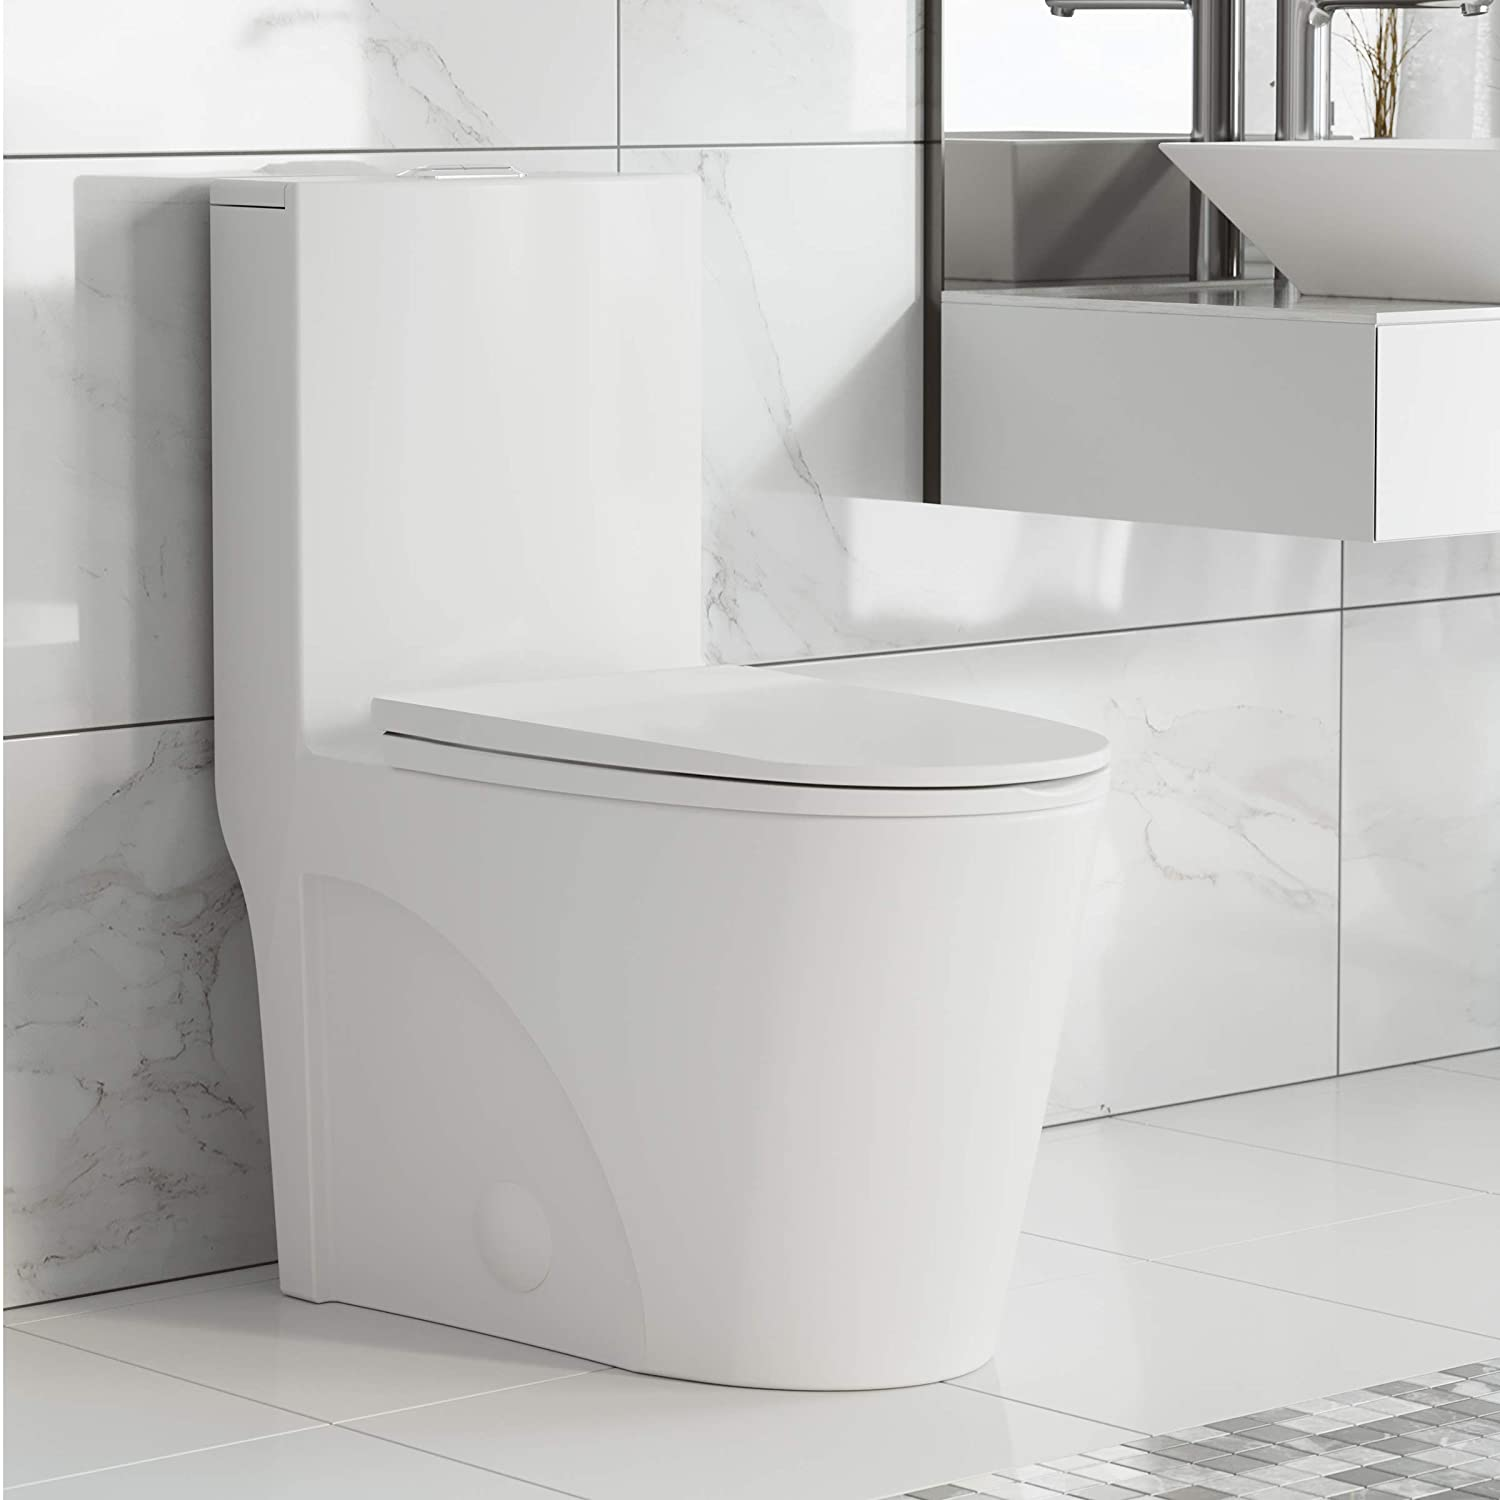 Toilet - Swiss Madison (Product Only, Installation not Included)